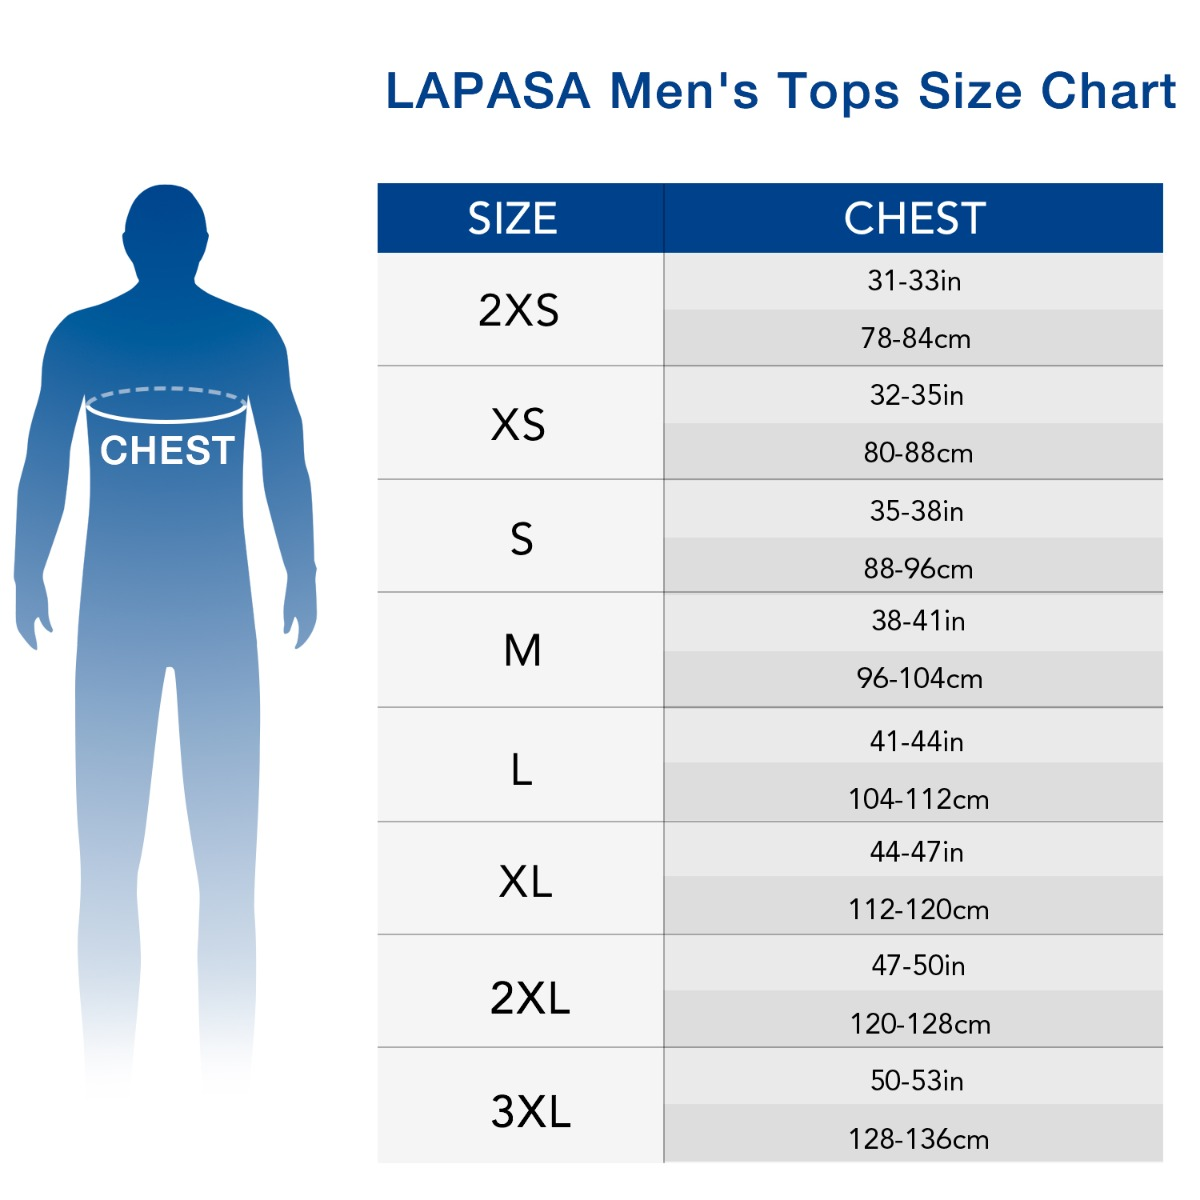 US  men's top size chart